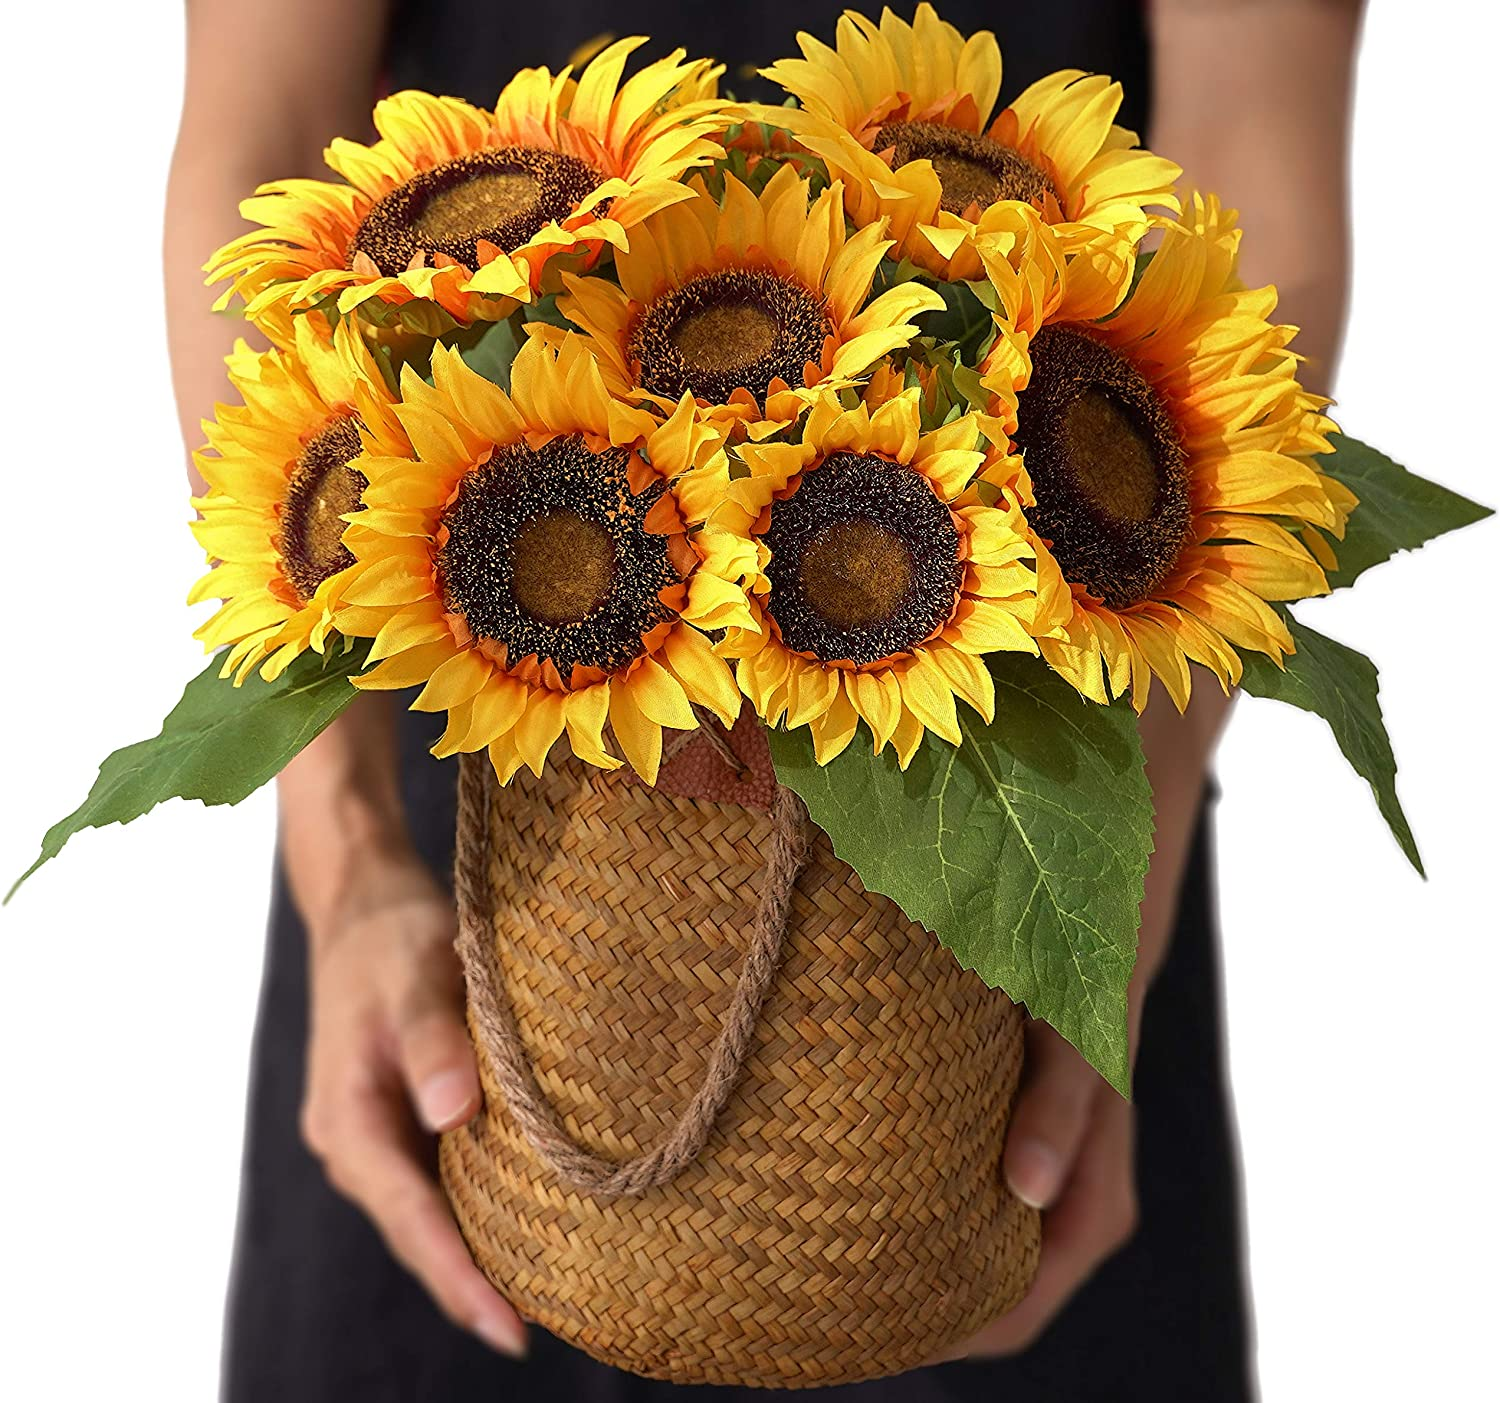 KARORO Artificial Flowers Sunflowers with Woven Basket Fake Flower Bouquets in Handmade Vase Faux Sunflower Decor for Home Office Table Centerpieces Decor Wedding Arrangements Decoration